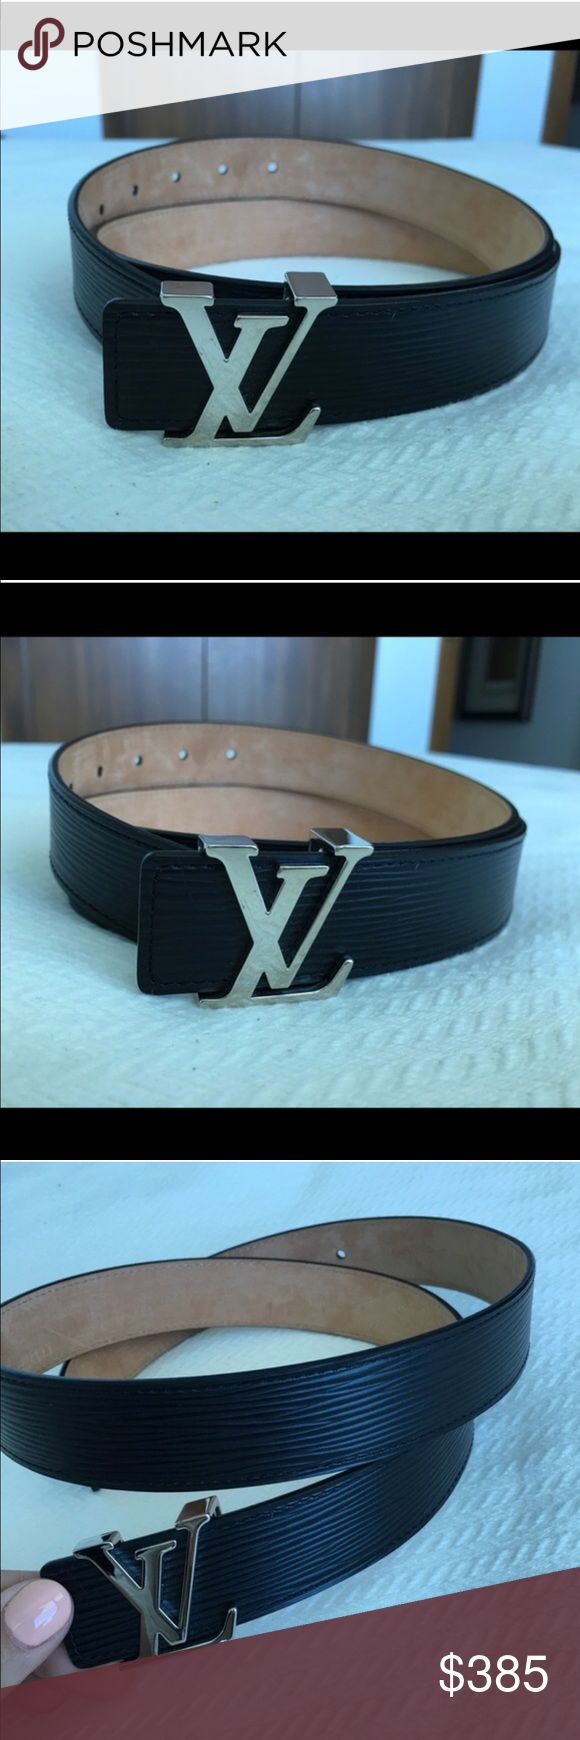 Louis Vuitton belt black with silver buckle Worn a few times, some scratches on the buckle. Size 85cm .. Louis Vuitton Accessories Belts